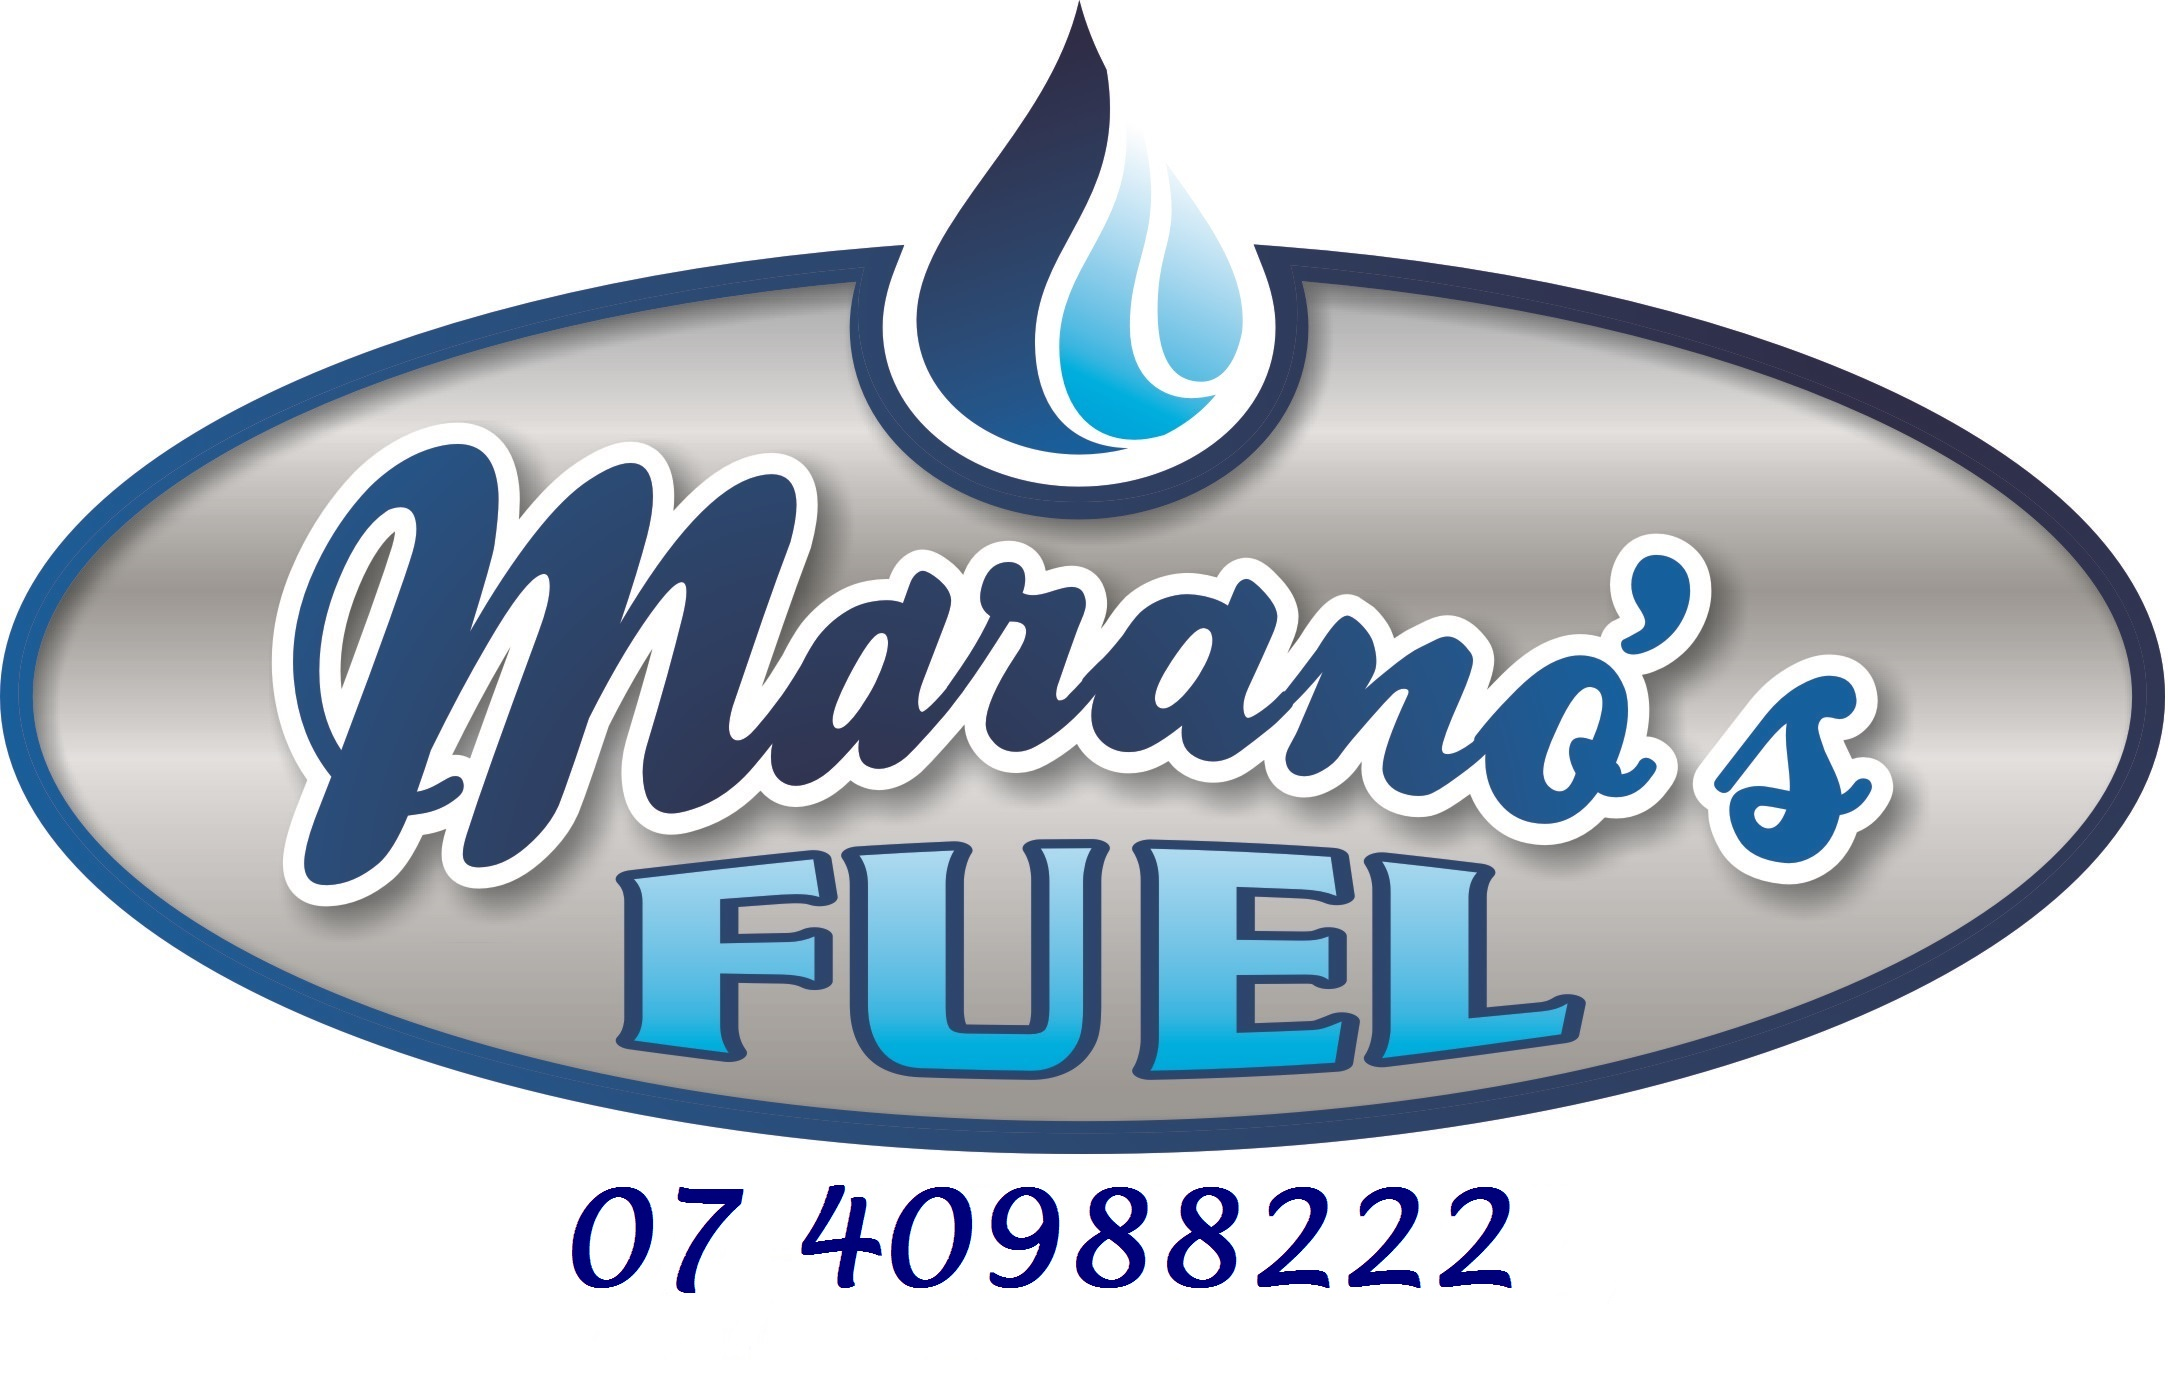 Marano's Fuel Logo & phone